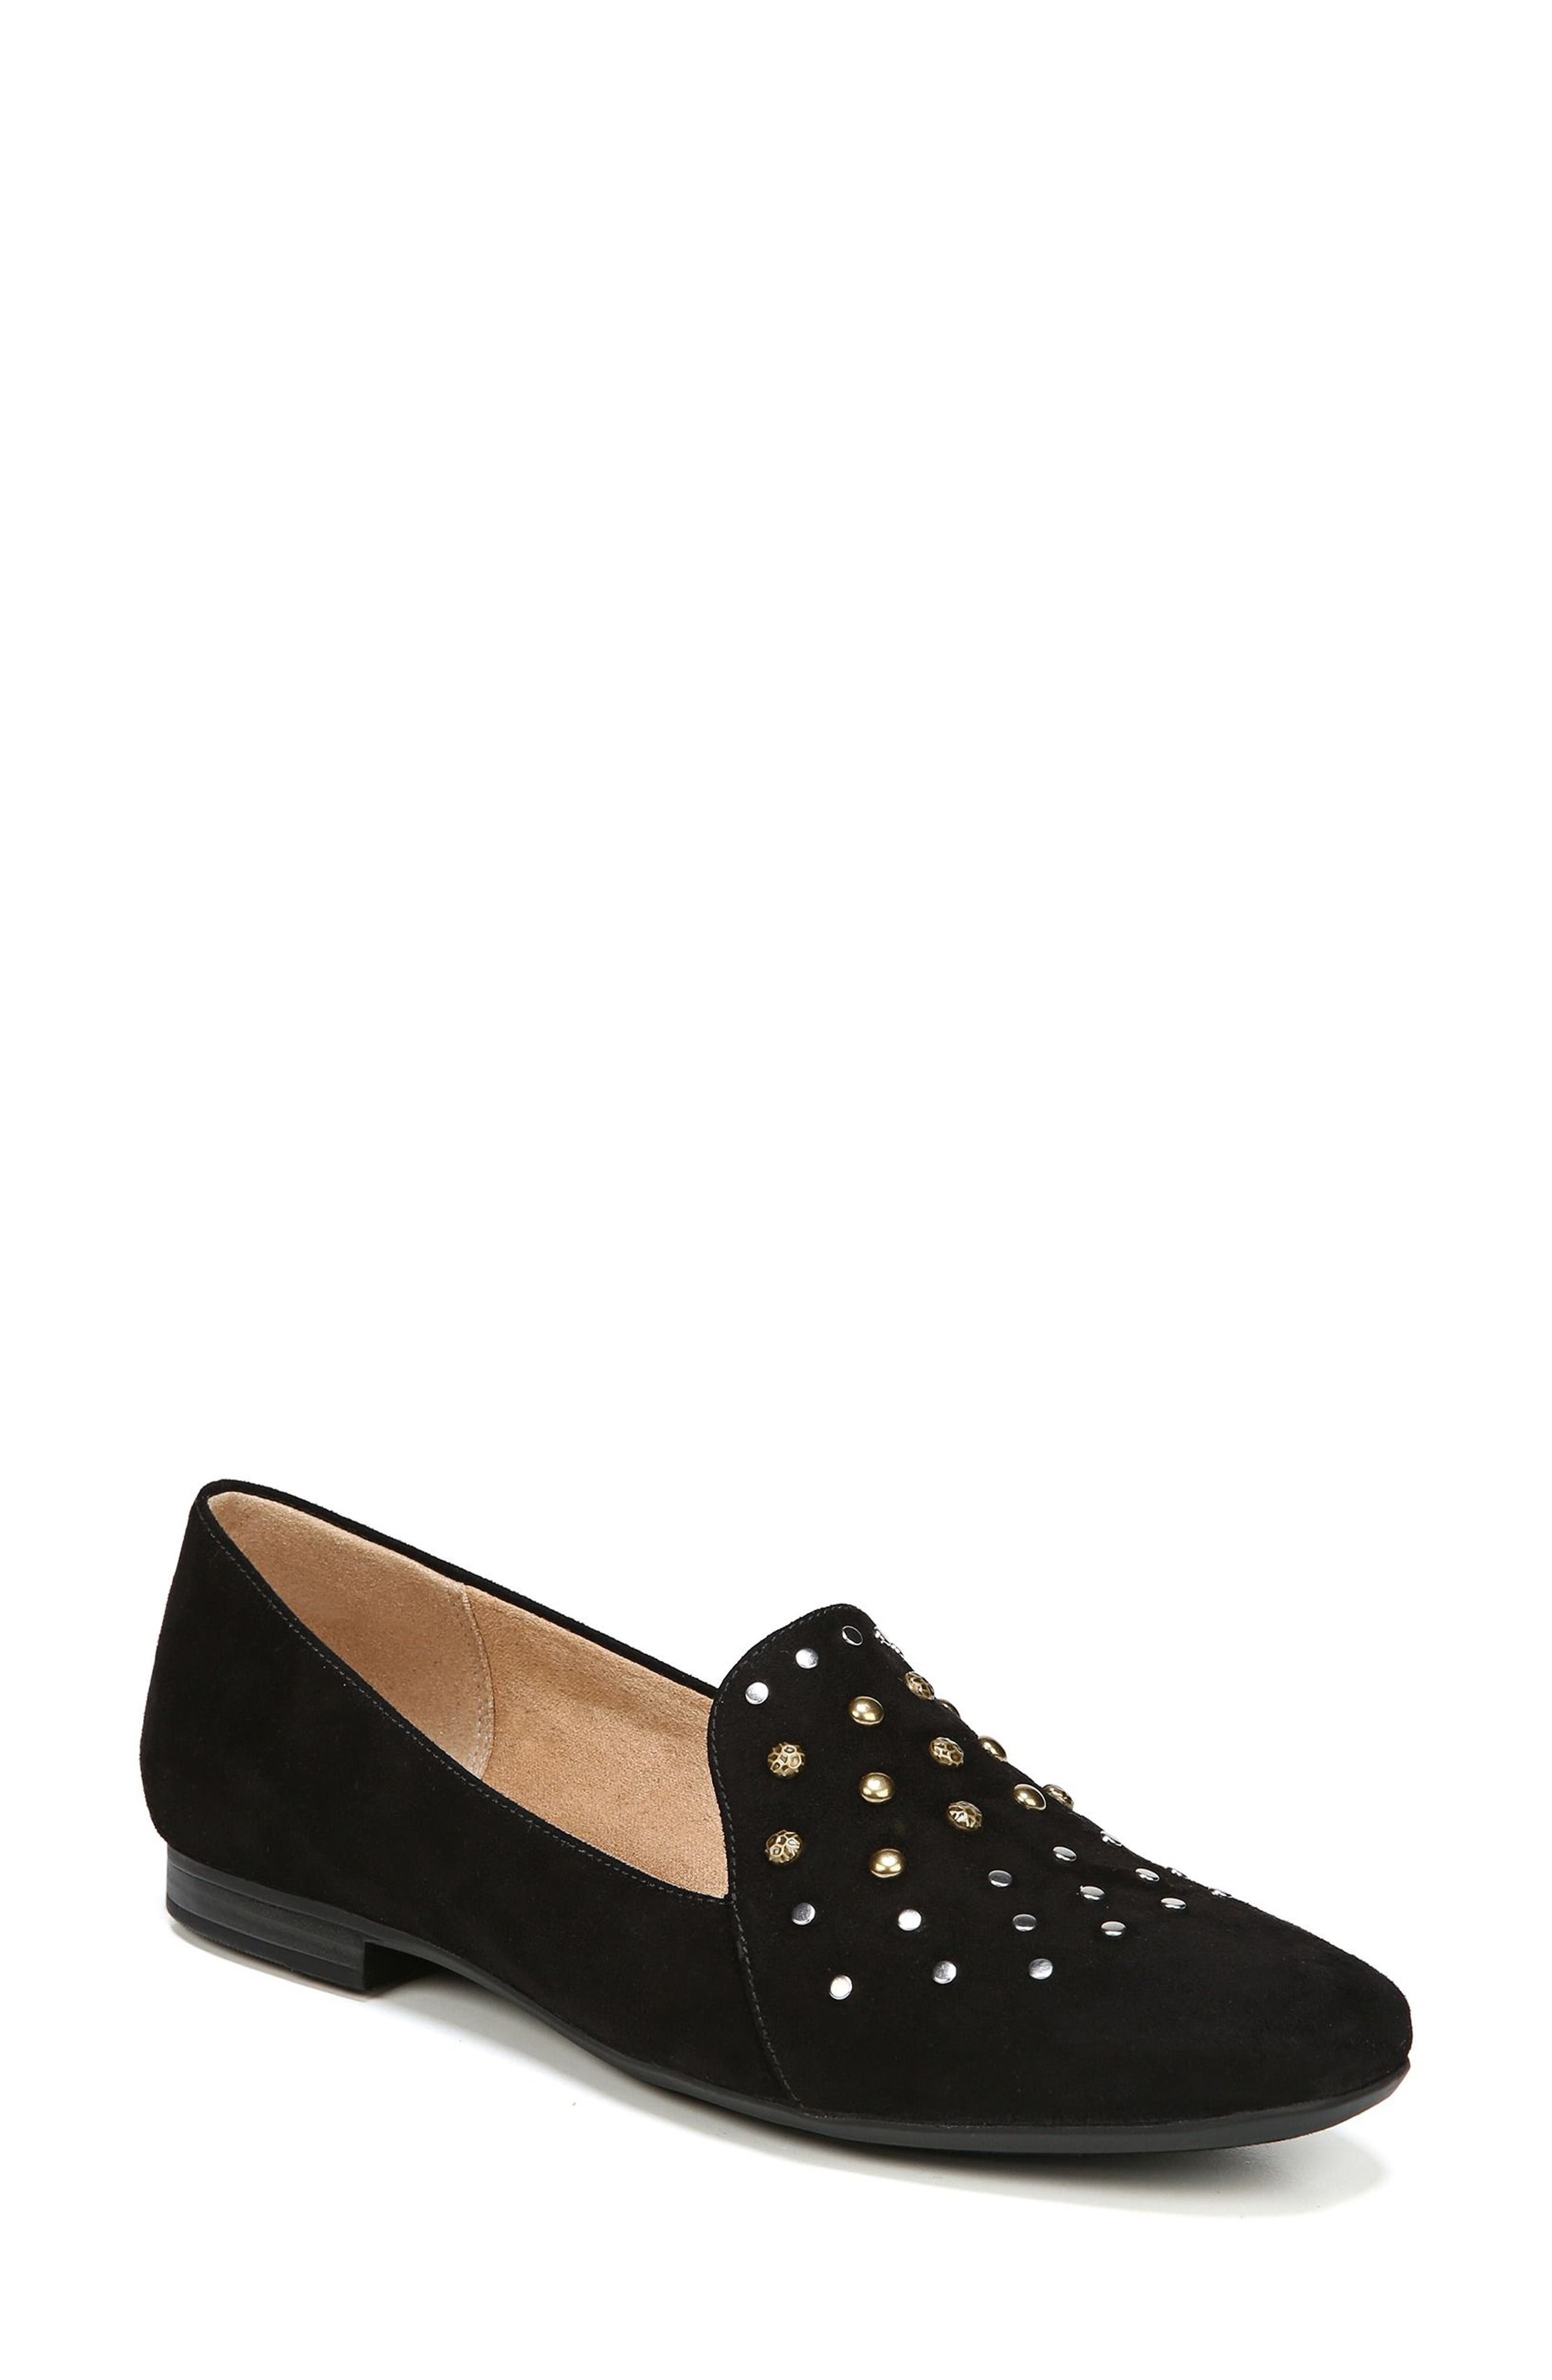 NATURALIZER Emiline 4 Loafer, Main, color, BLACK FABRIC